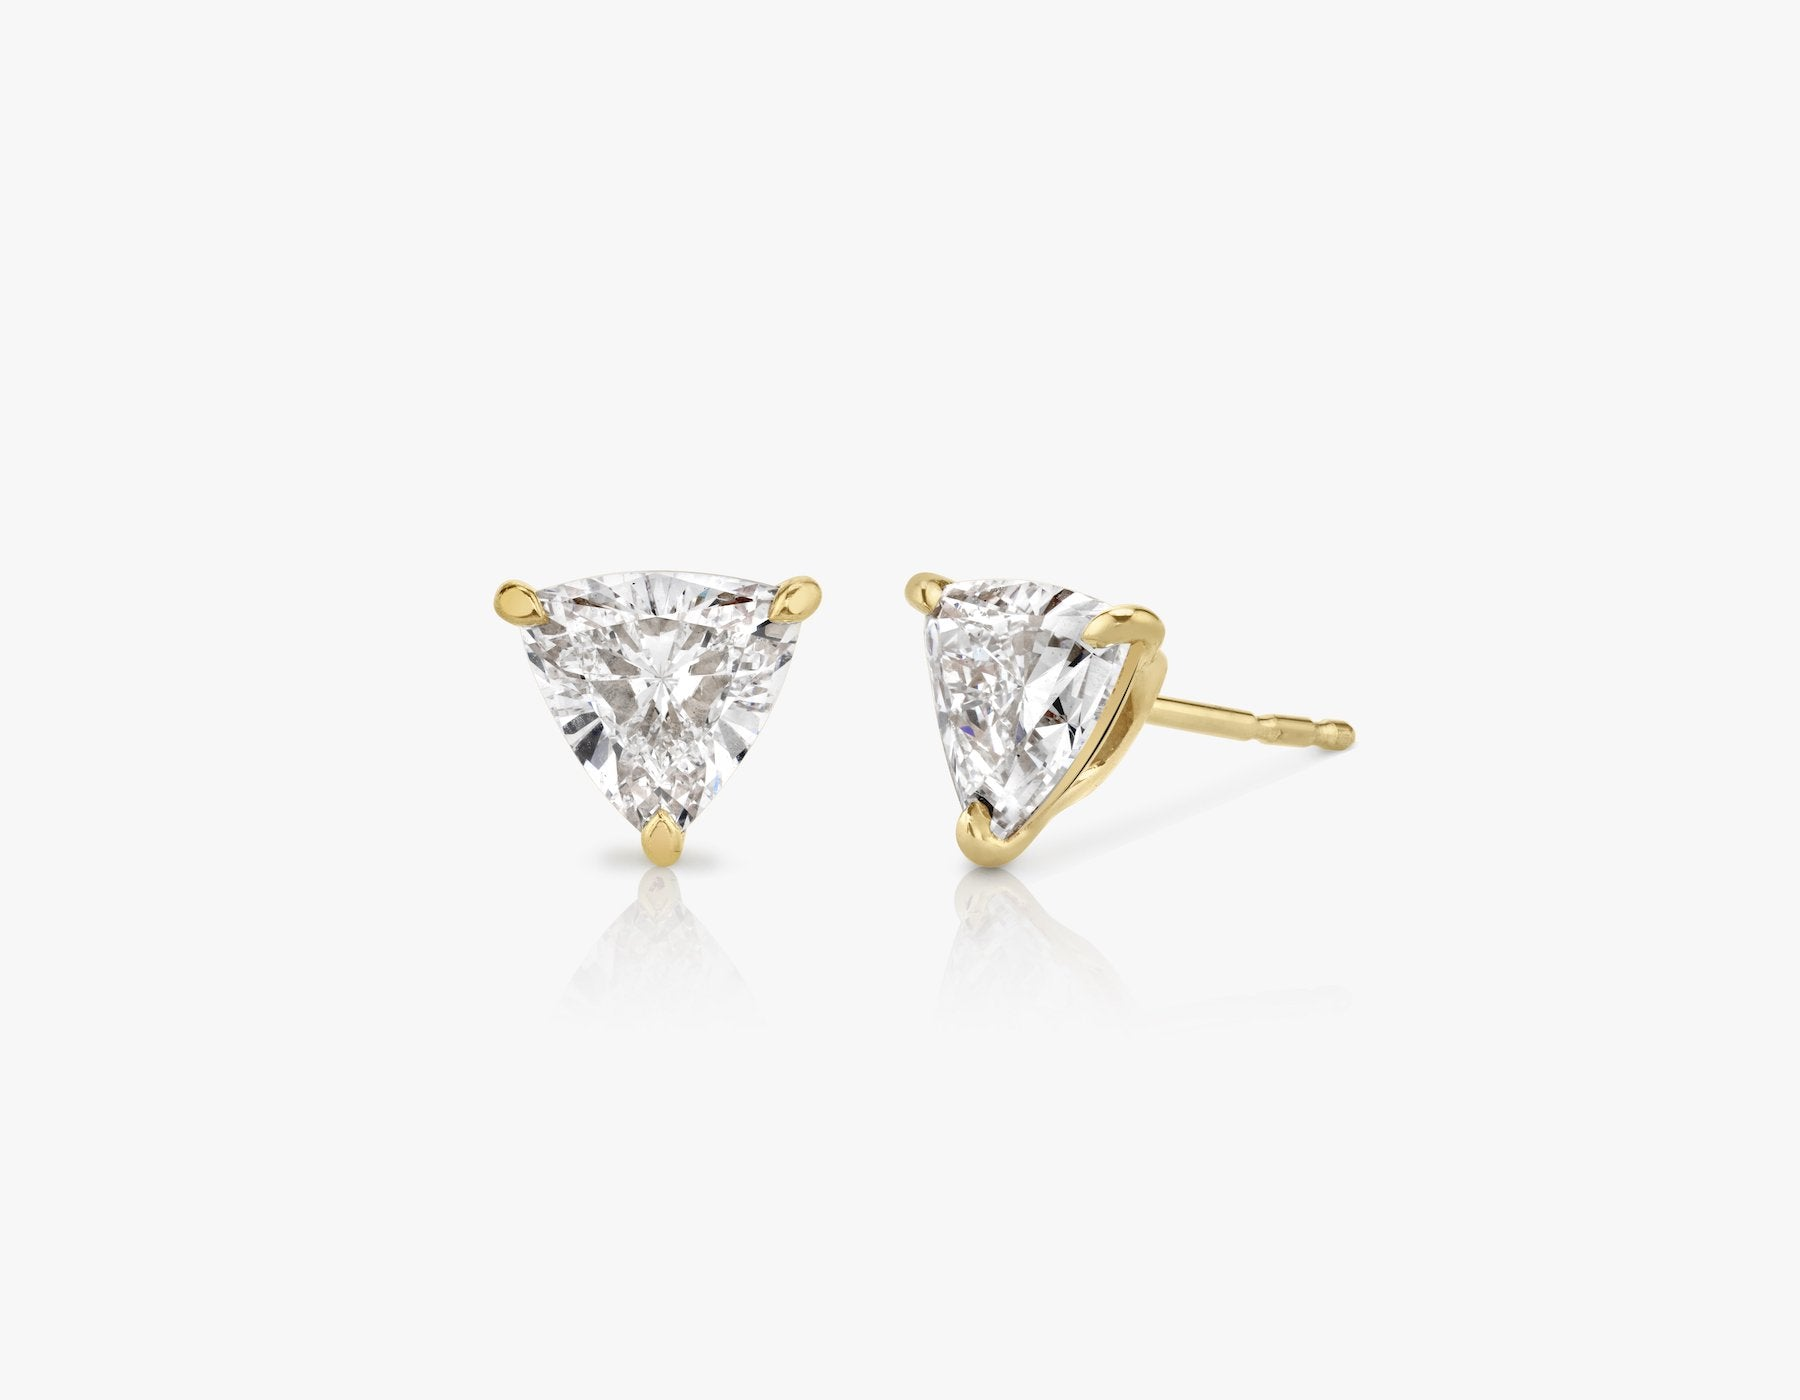 Vrai 14k solid gold Solitaire Trillion Diamond Studs sustainably created triangle diamonds prong set earrings, 14K Yellow Gold